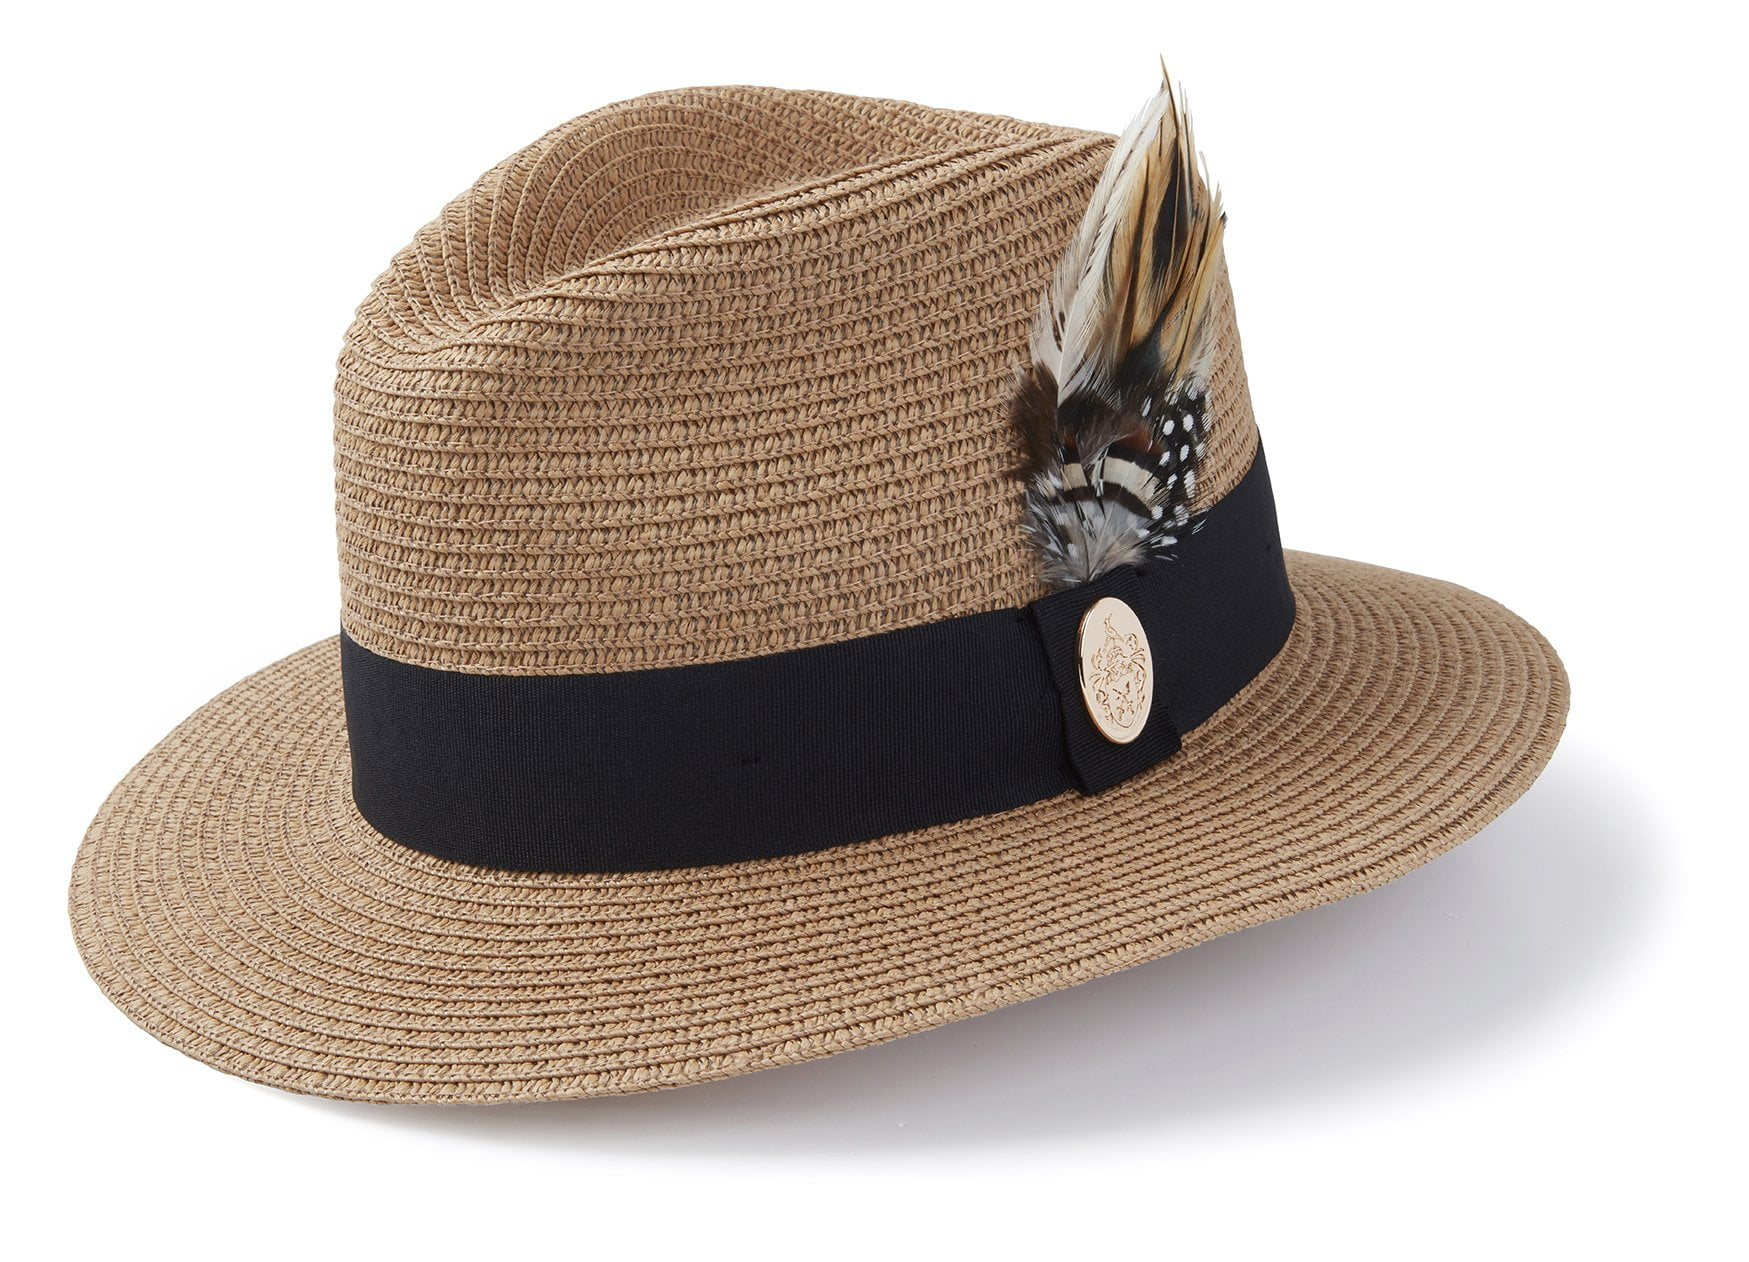 hicks-brown-fedora-the-aldeburgh-fedora-in-natural-black-ribbon-natural-aldeburgh-fedora-black-ribbon-guinea-and-pheasant-feather-hicks-brown-15989296070738